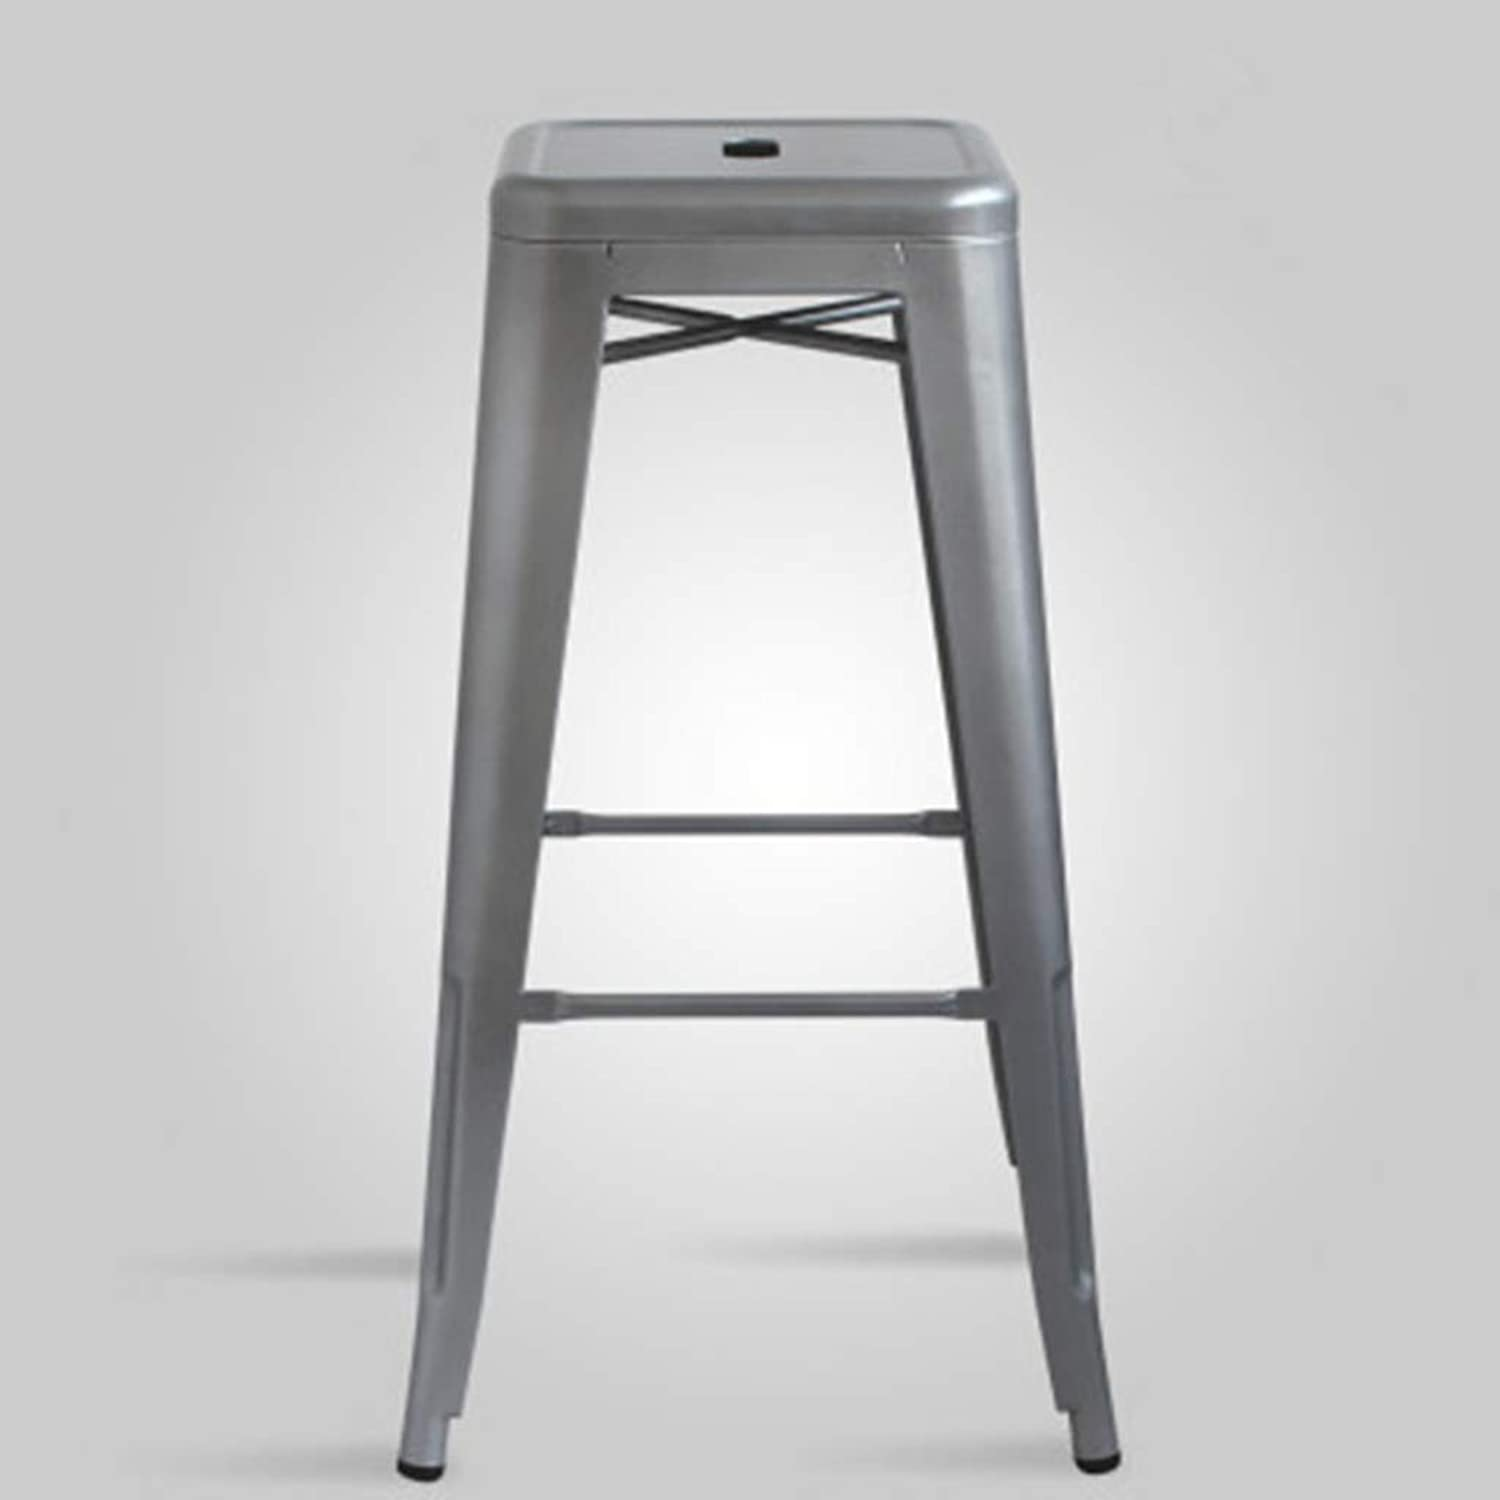 XINGPING Industrial Wind Retro Metal Stool Bar Chair Bar Stool Bar Stool Bar Stool High Stool Front Desk Chair High Chair (color   No backrest, Size   76cm)